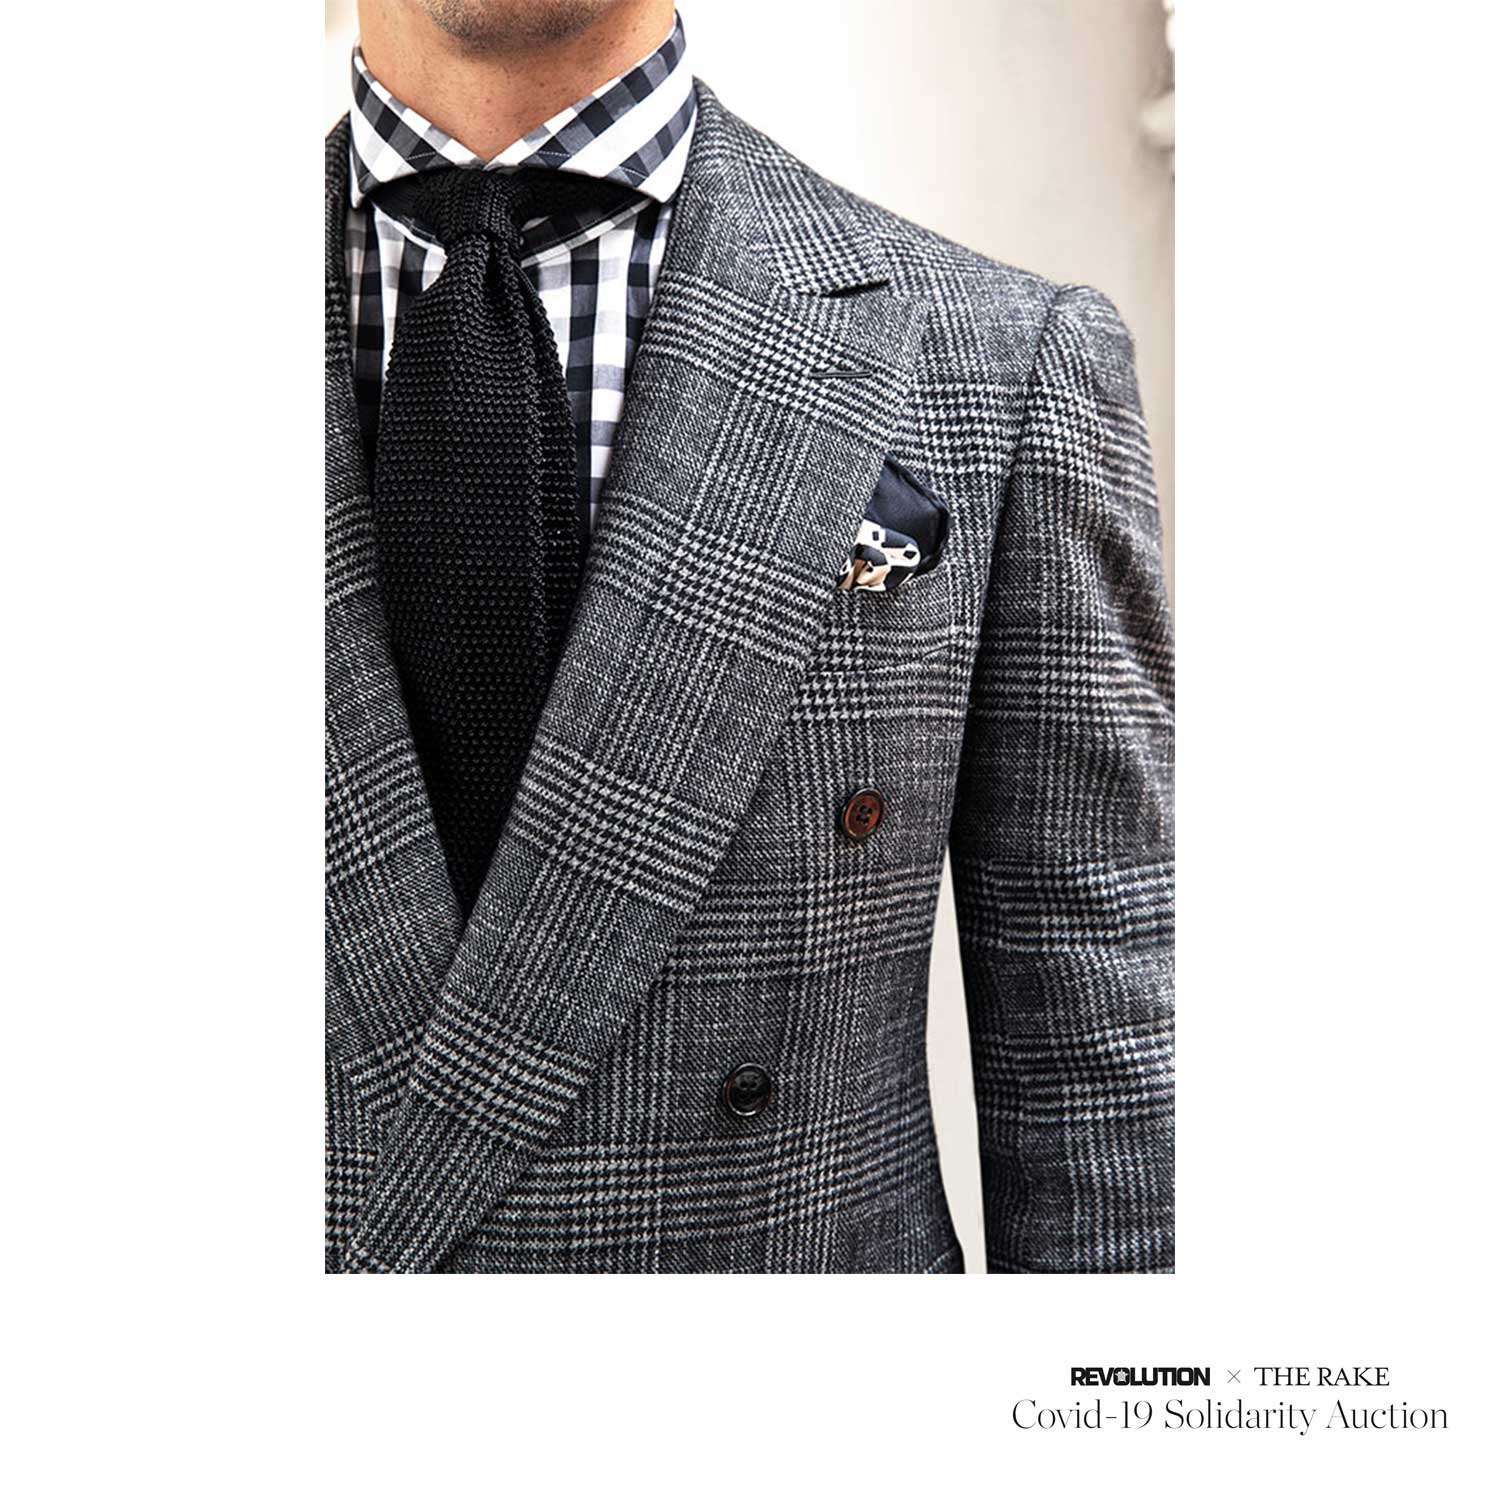 Bespoke Suit for Revolution x The Rake Covid-19 Solidarity Auction